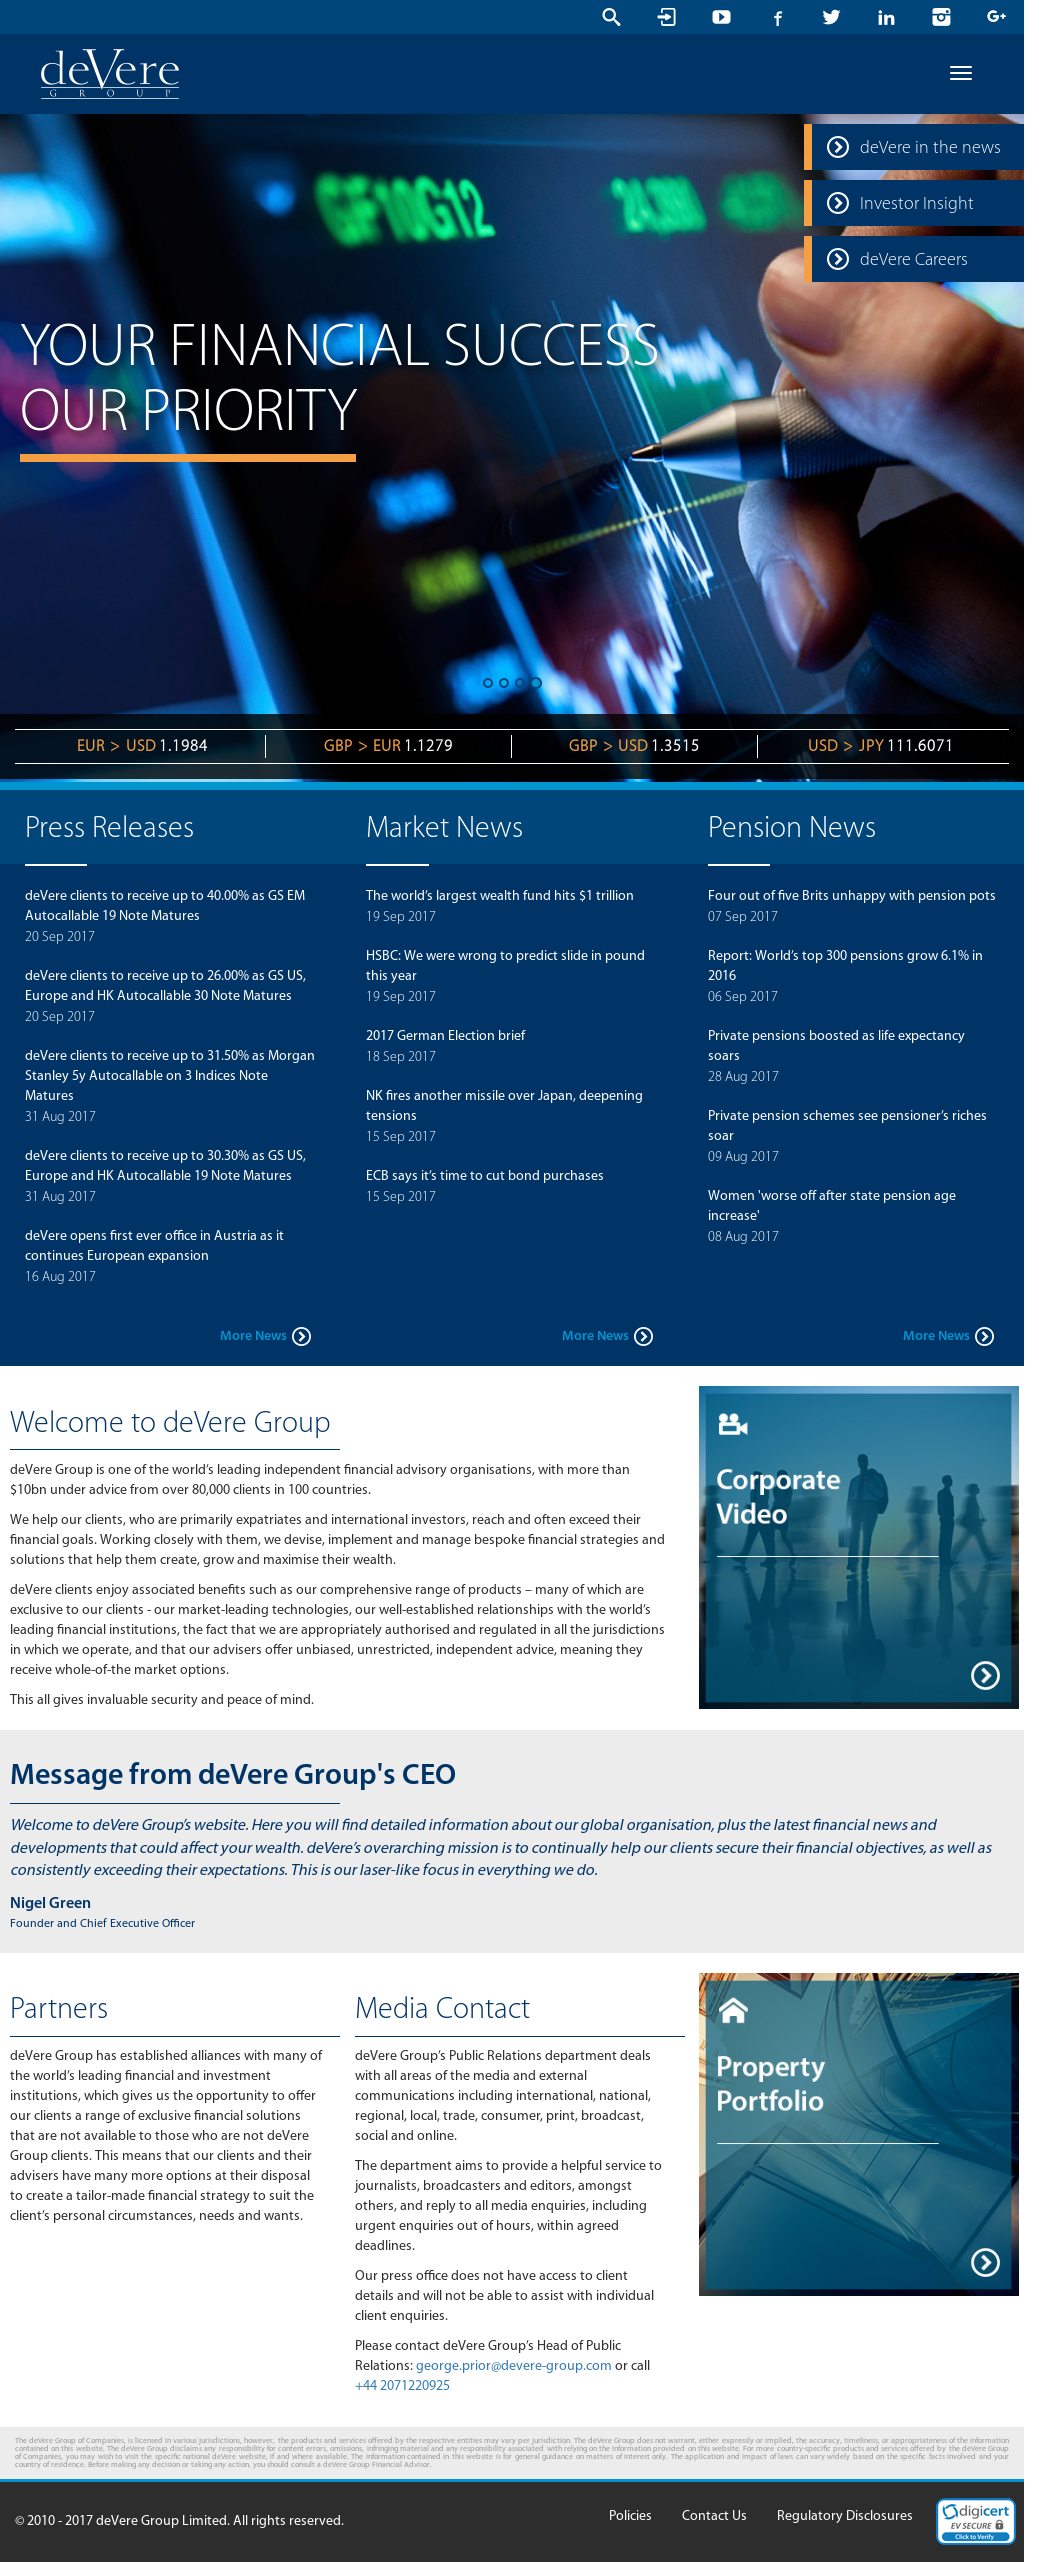 deVere Group Competitors, Revenue and Employees - Owler